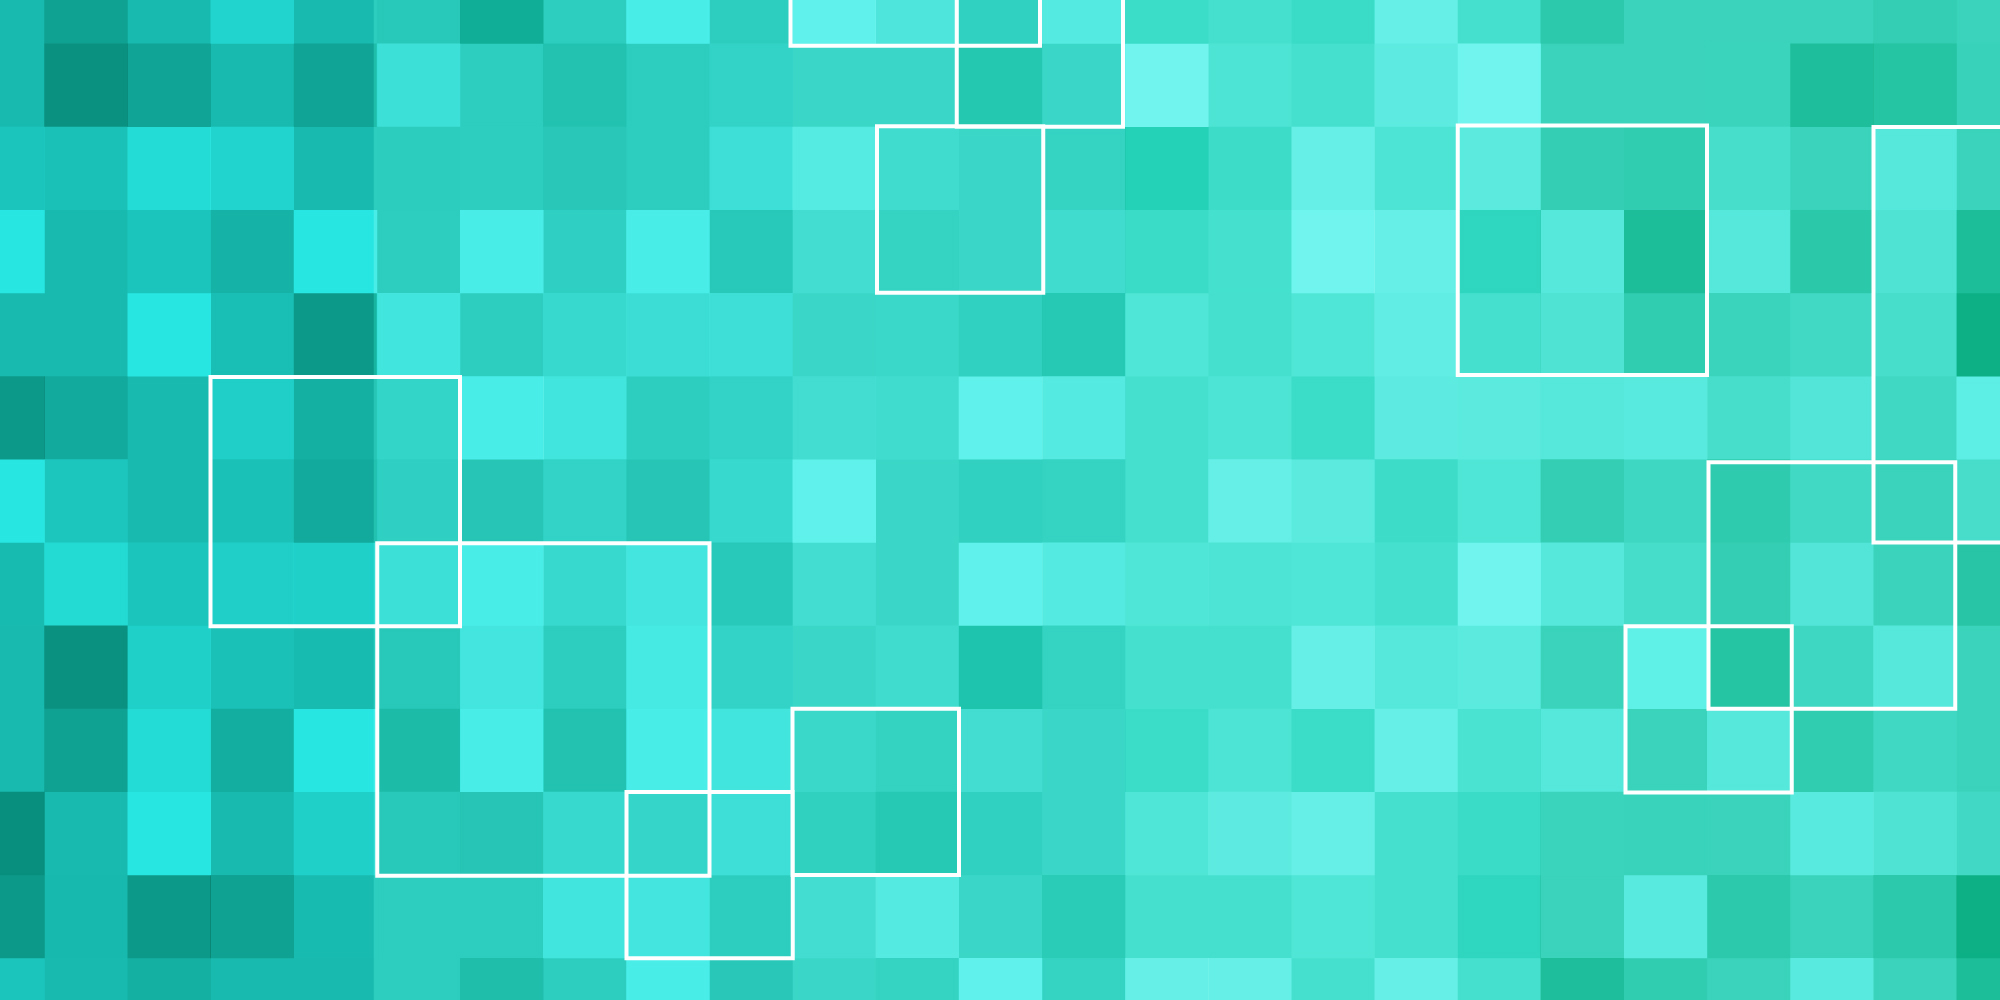 Green, teal, and blue gradient square pattern